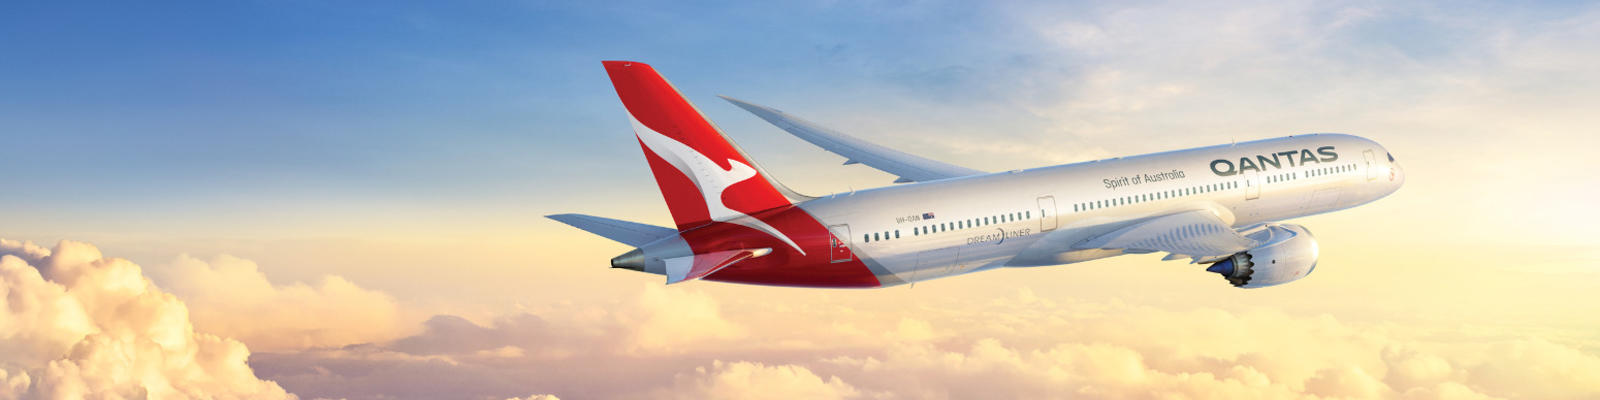 The Qantas Dreamliner flies through the clouds.